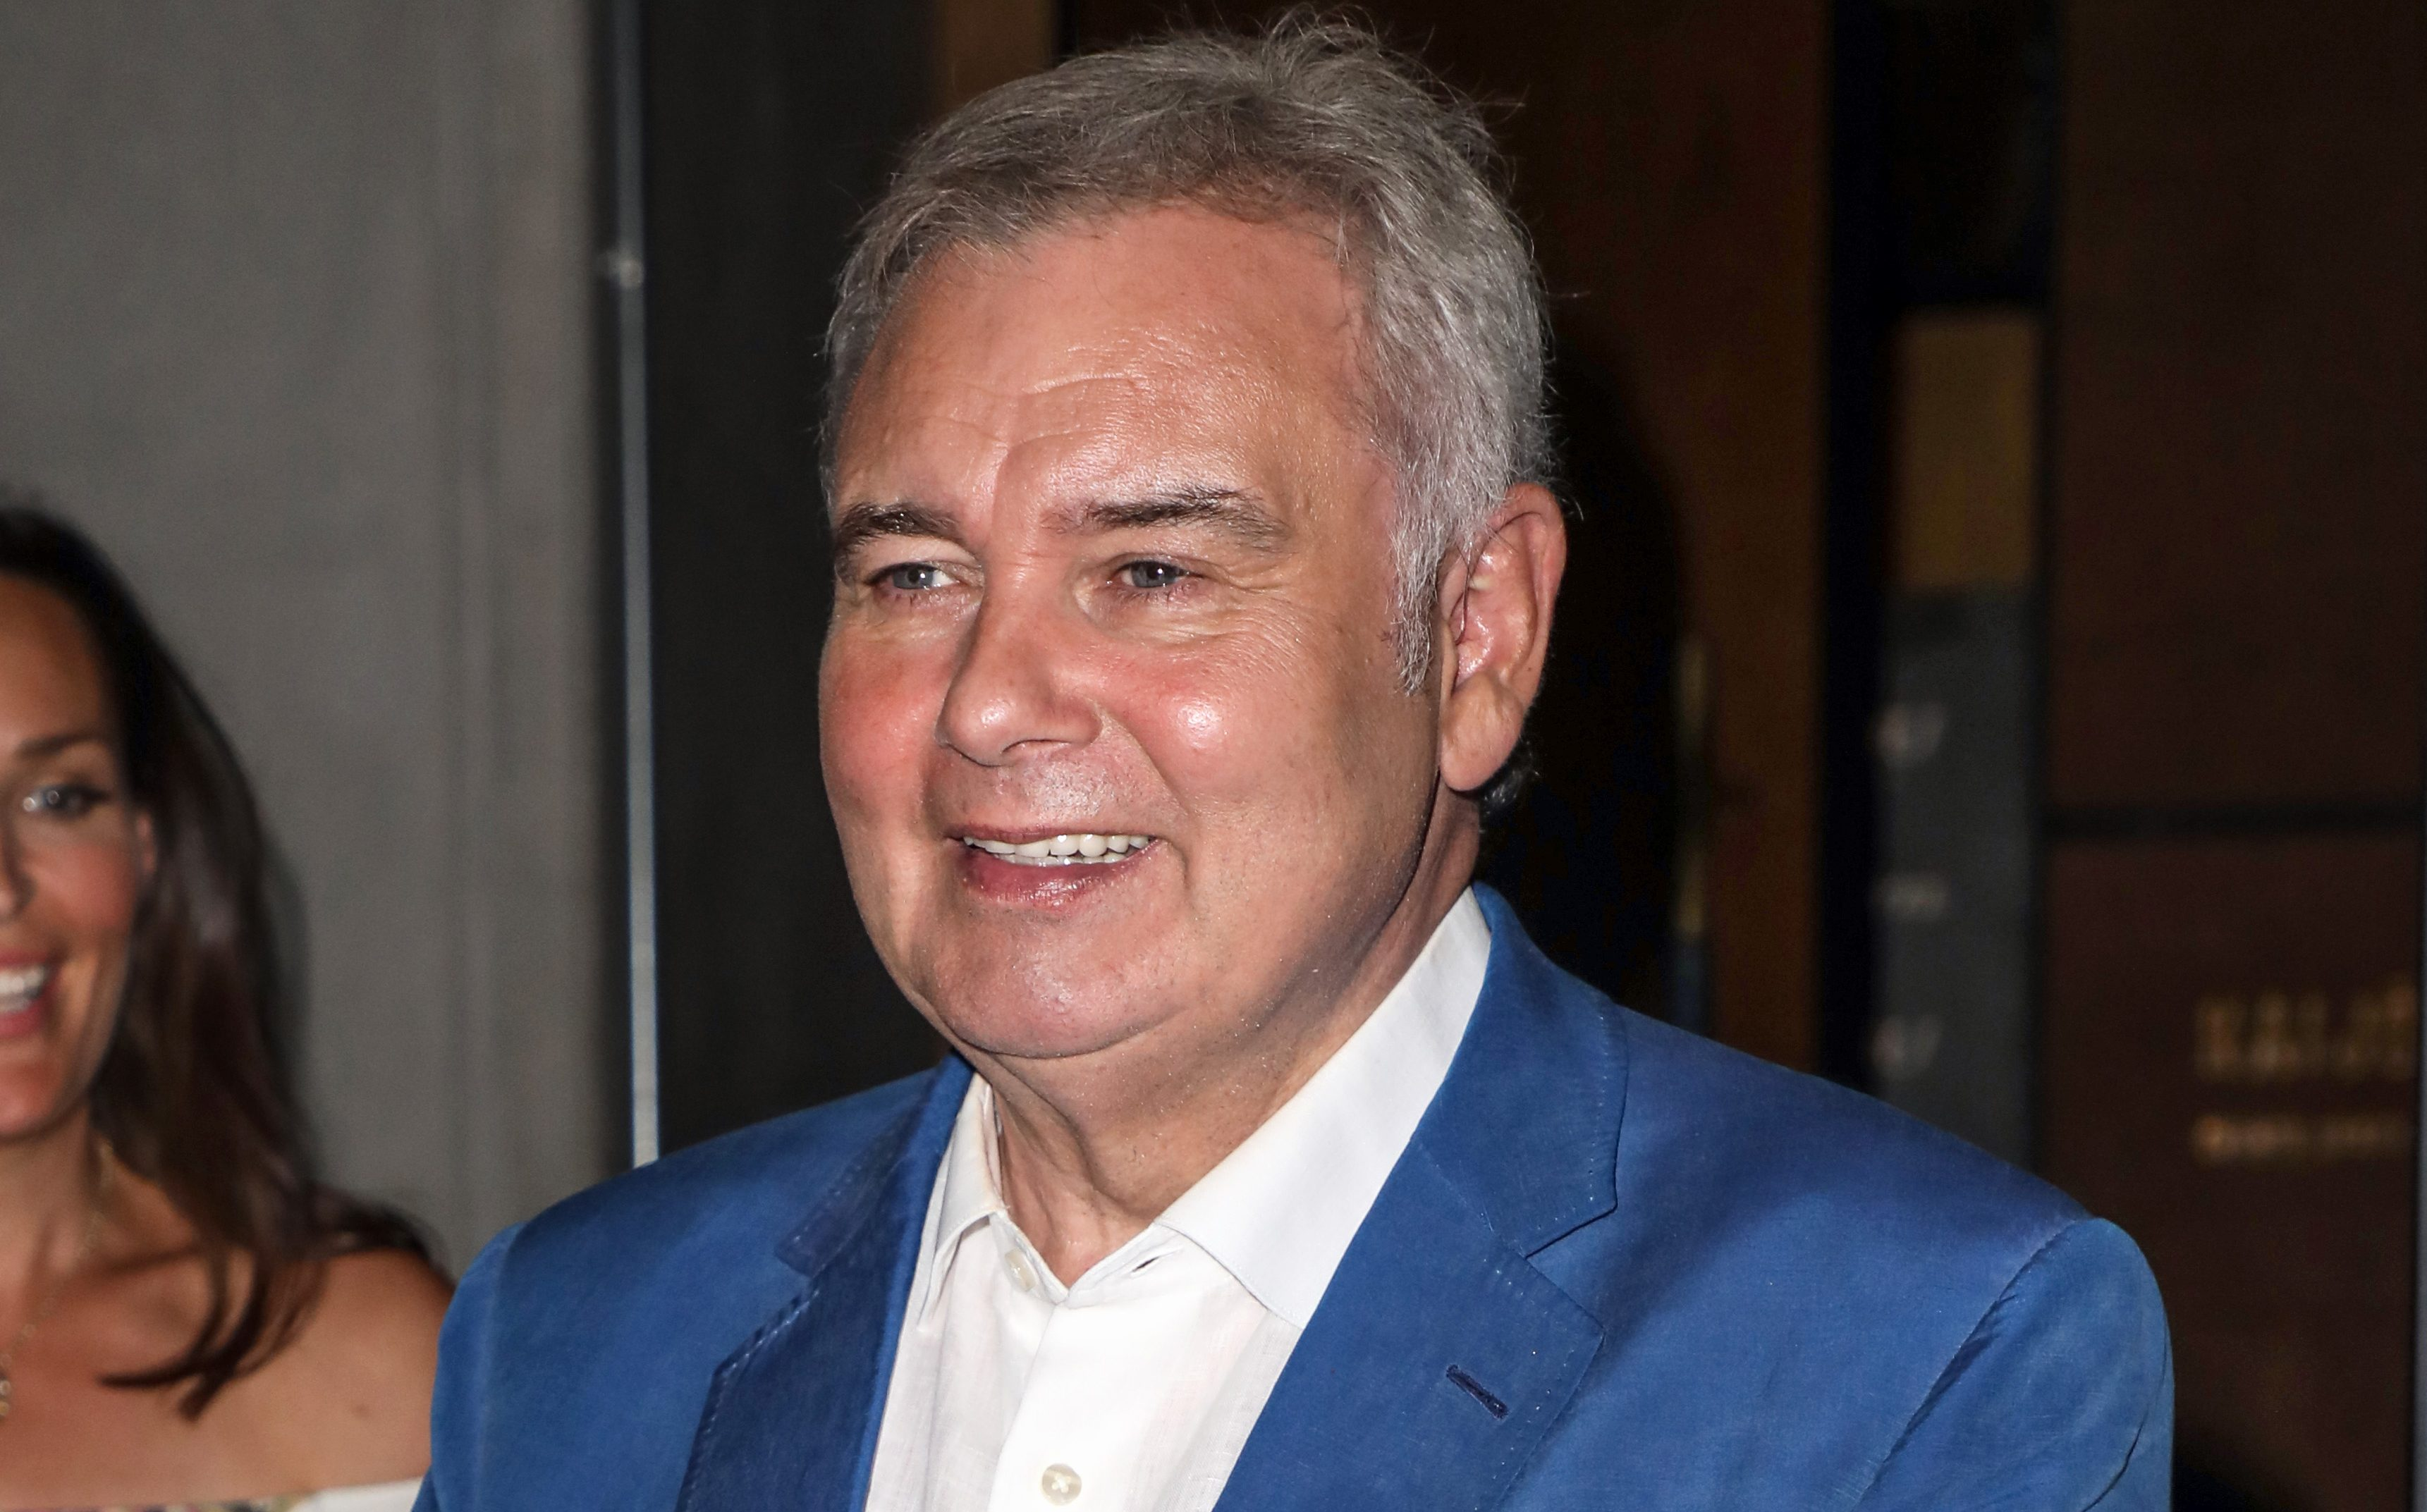 Eamonn Holmes reveals why he often doesn't vote in elections